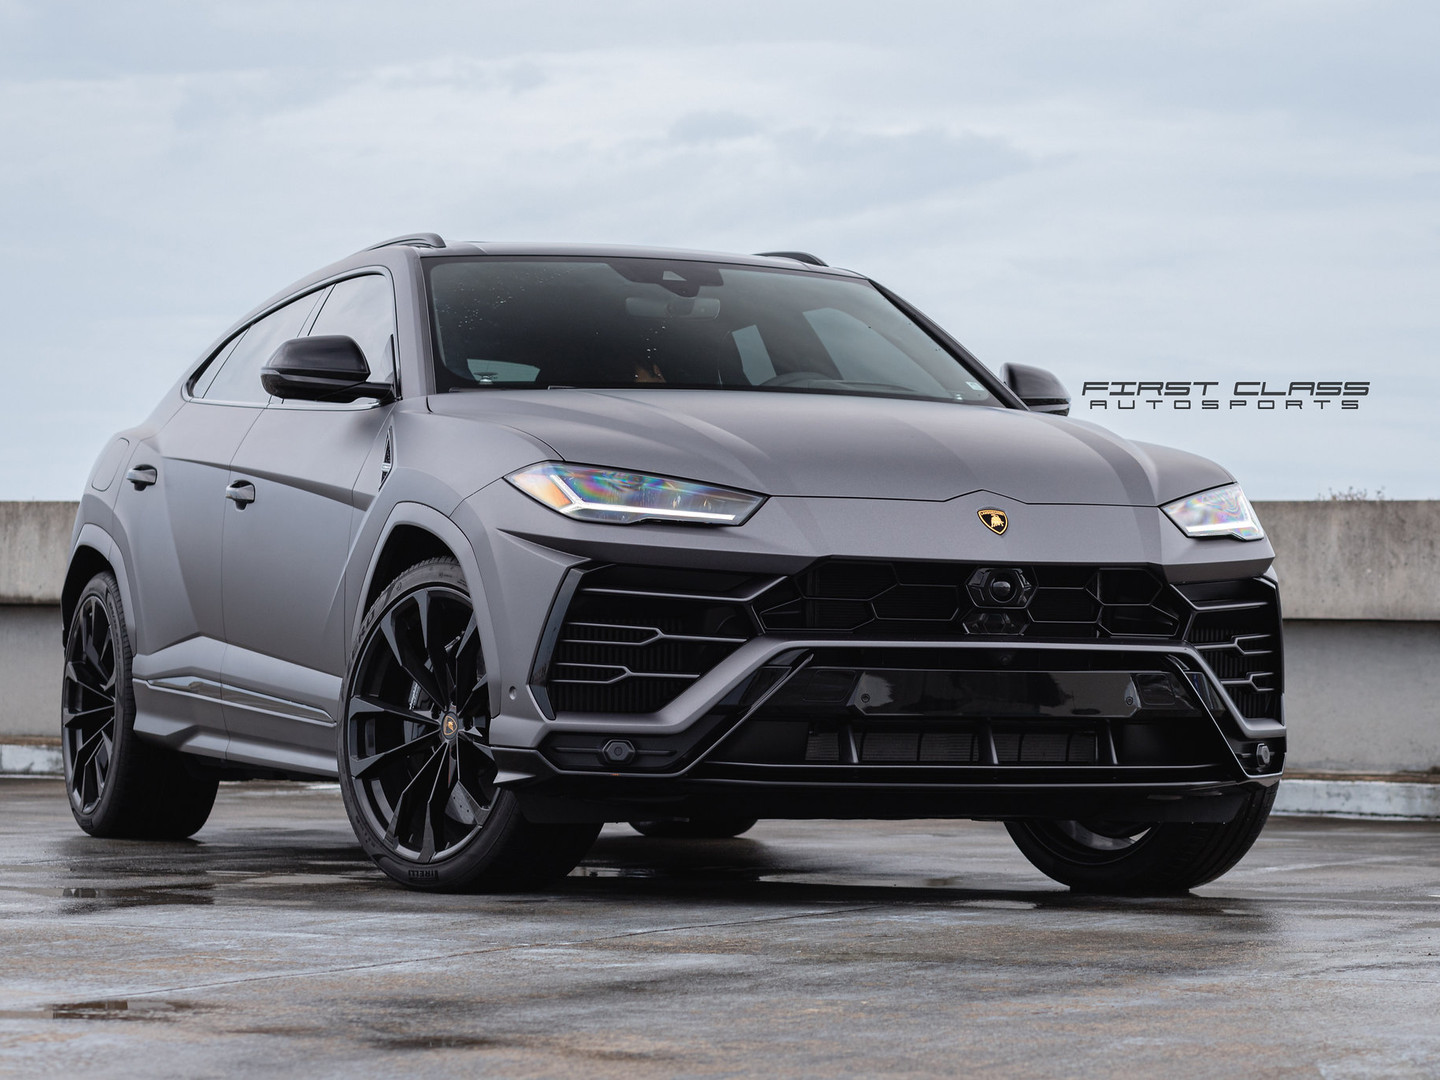 Lamborghini Urus Miami car wrap - best car wrap